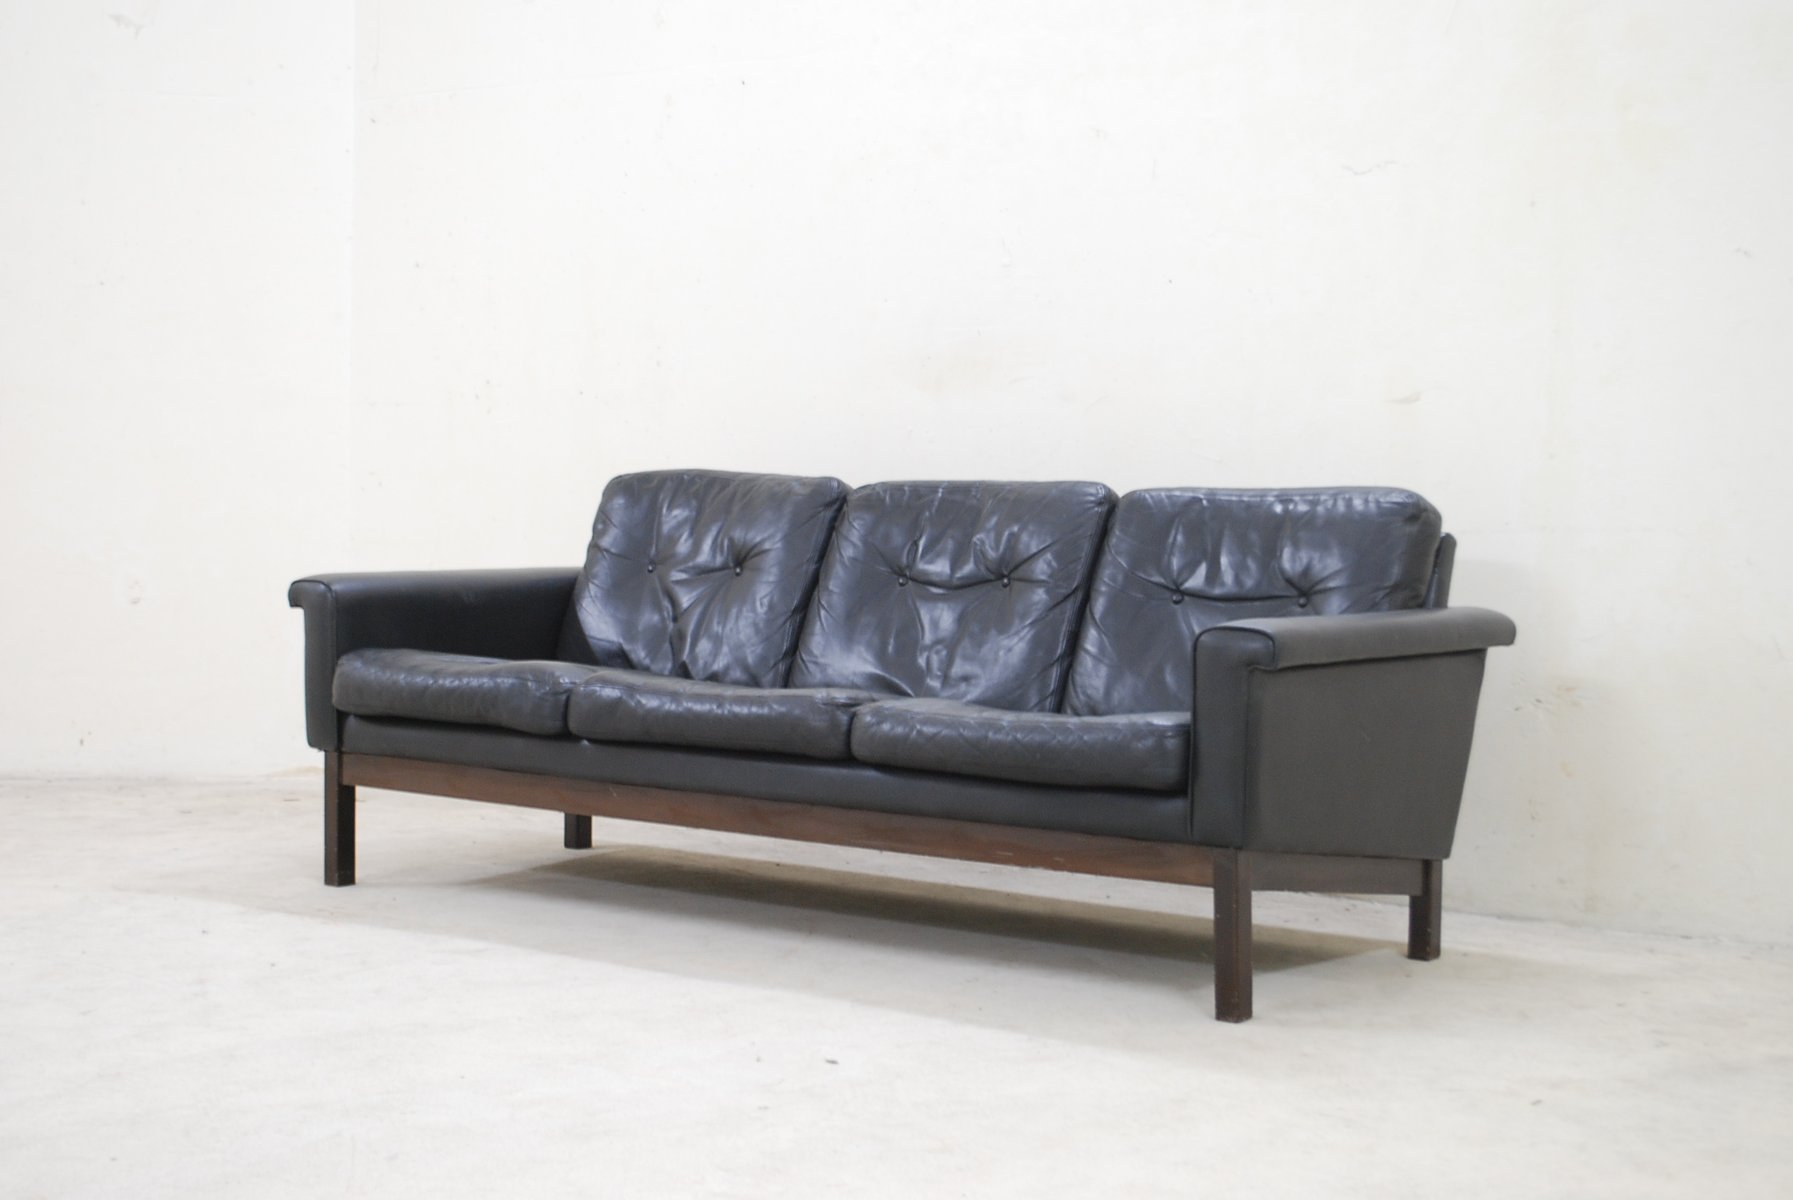 Vintage Black Leather Sofa from Asko for sale at Pamono